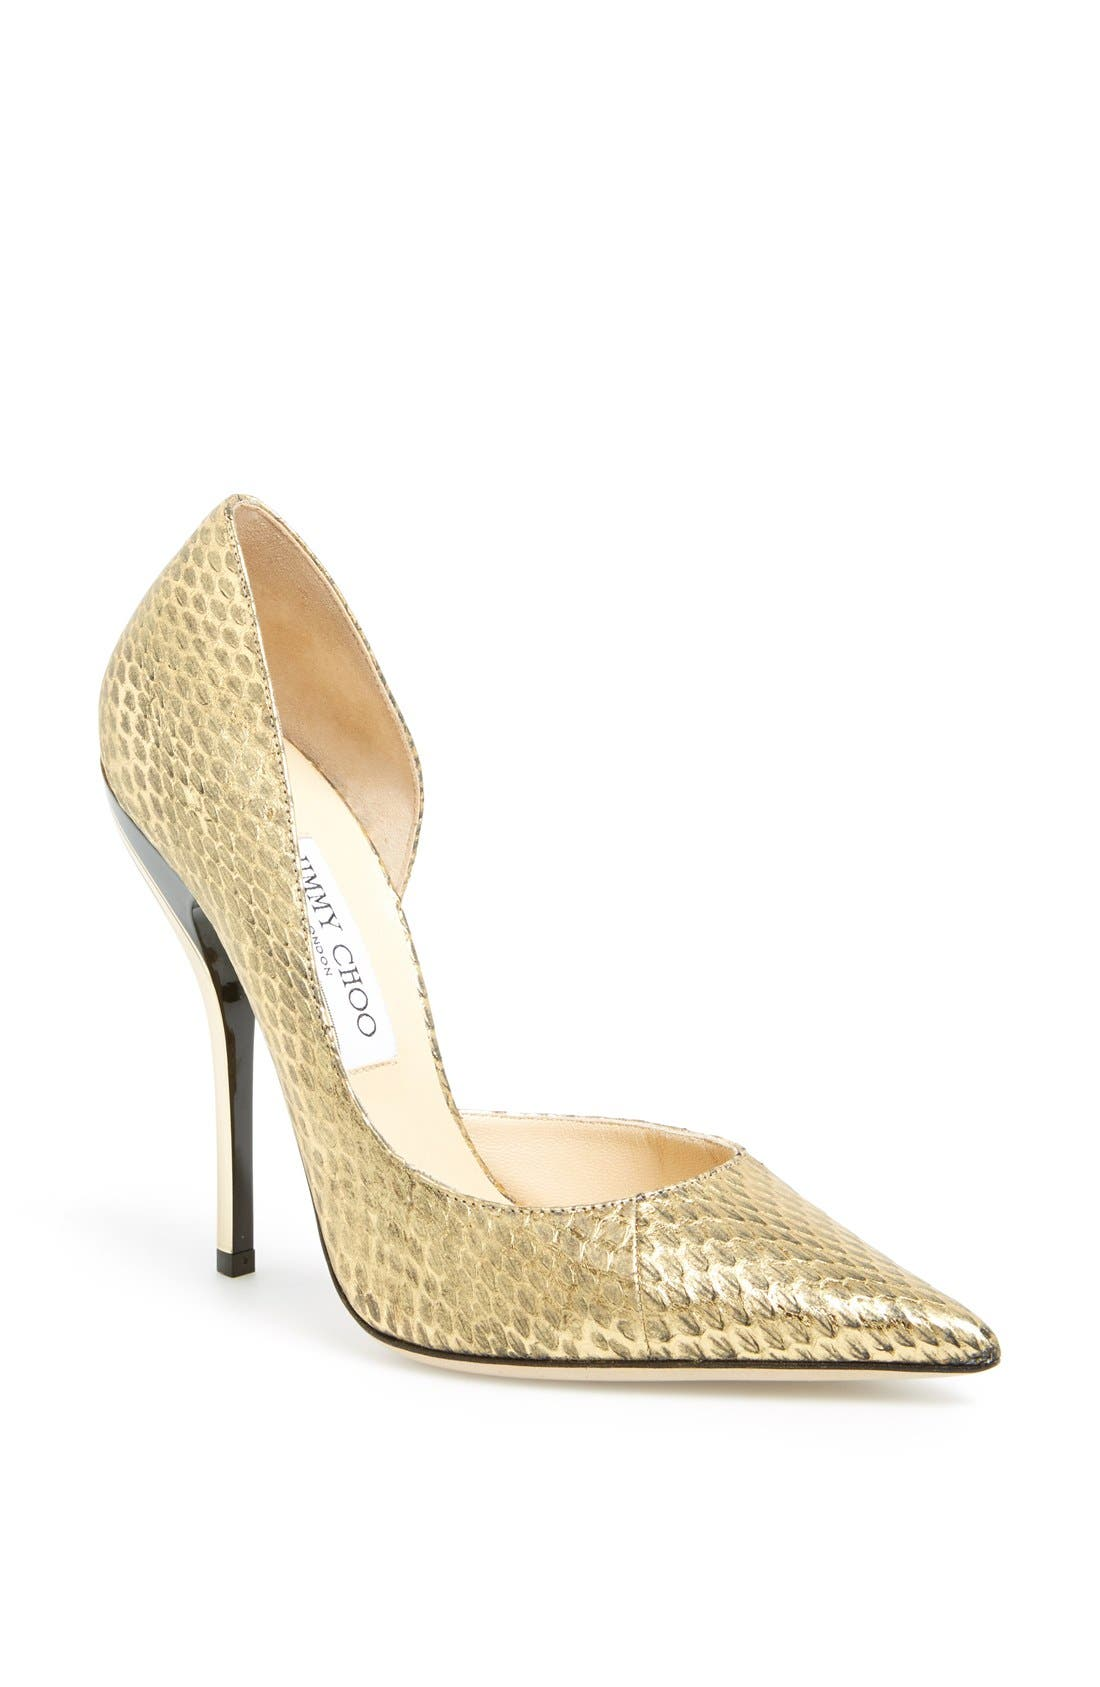 Main Image - Jimmy Choo 'Whistler' Snake Embossed Leather Pump